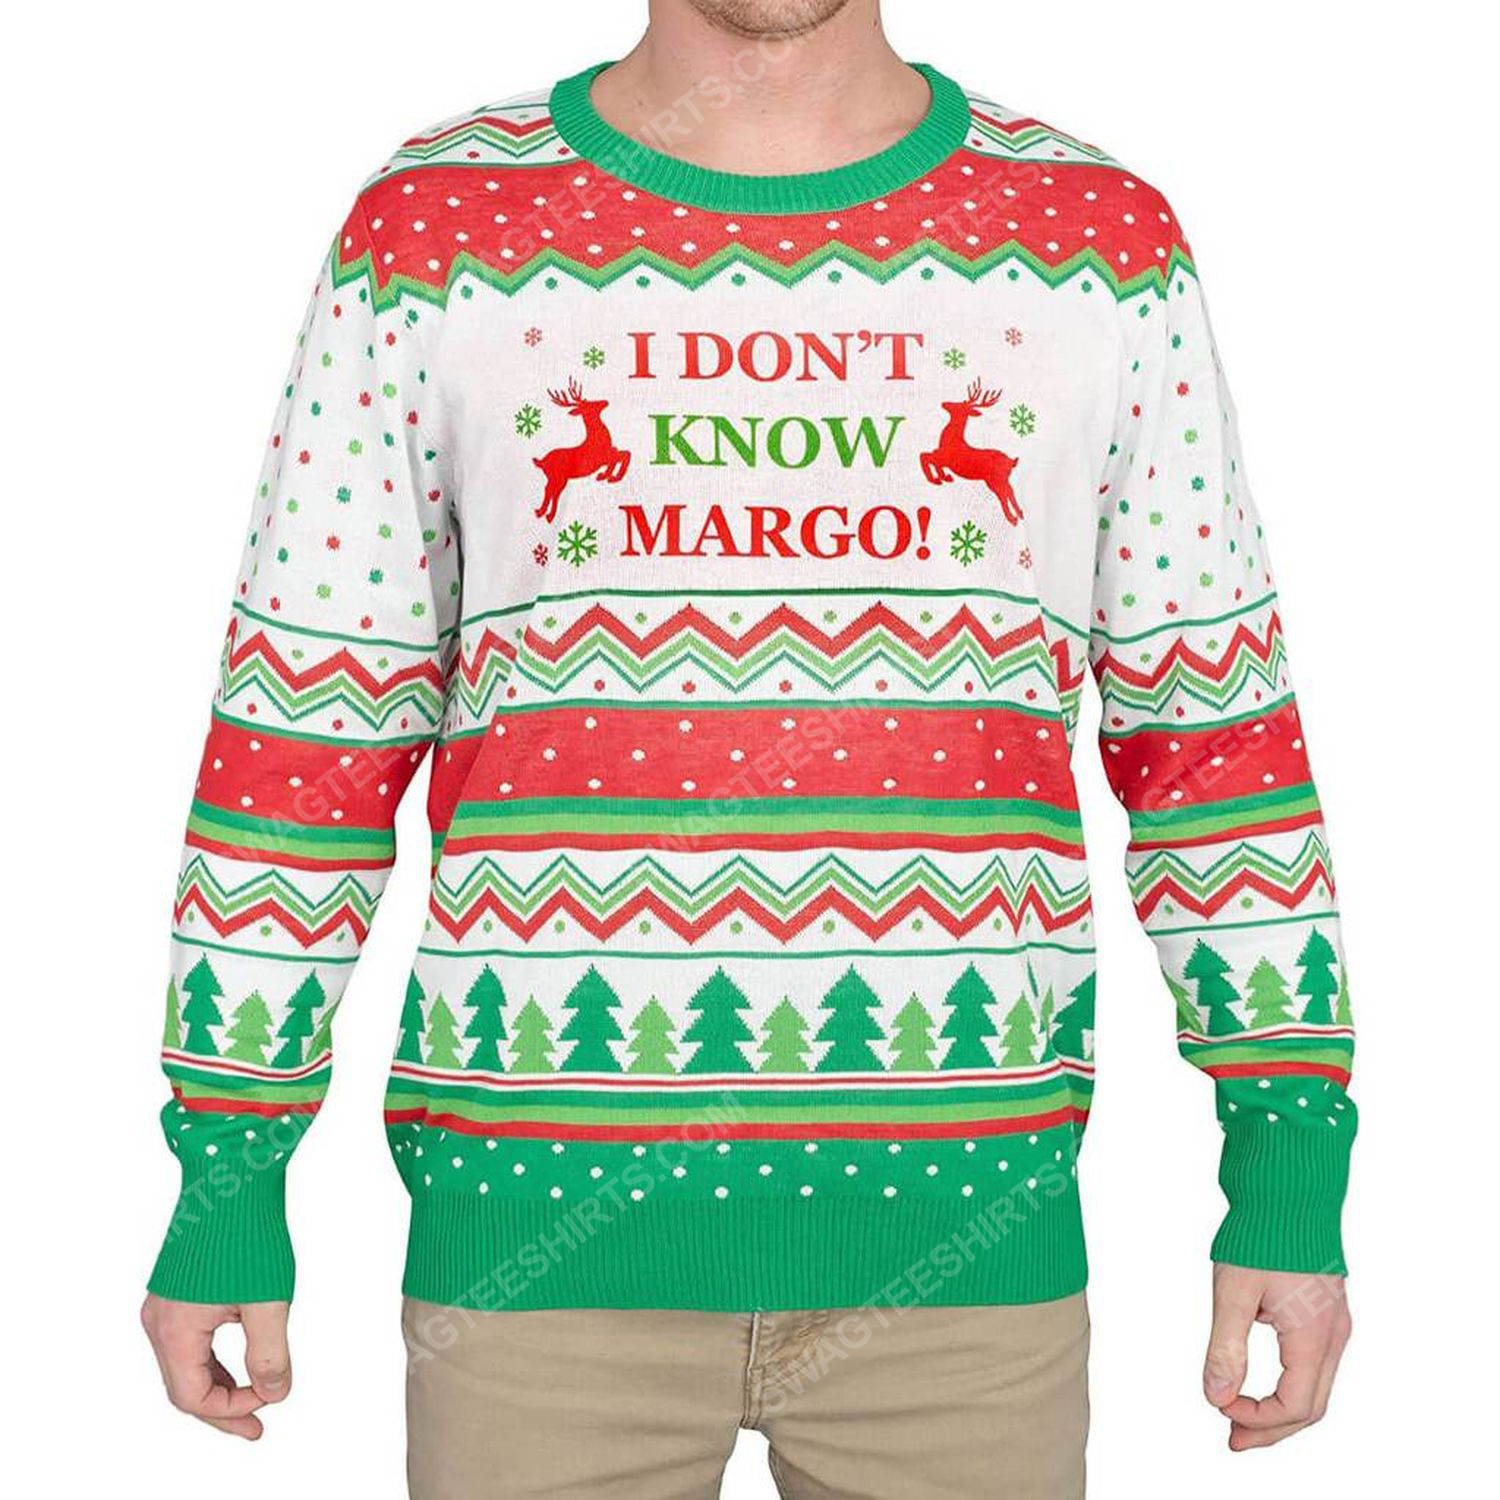 I don't know margo full print ugly christmas sweater 1